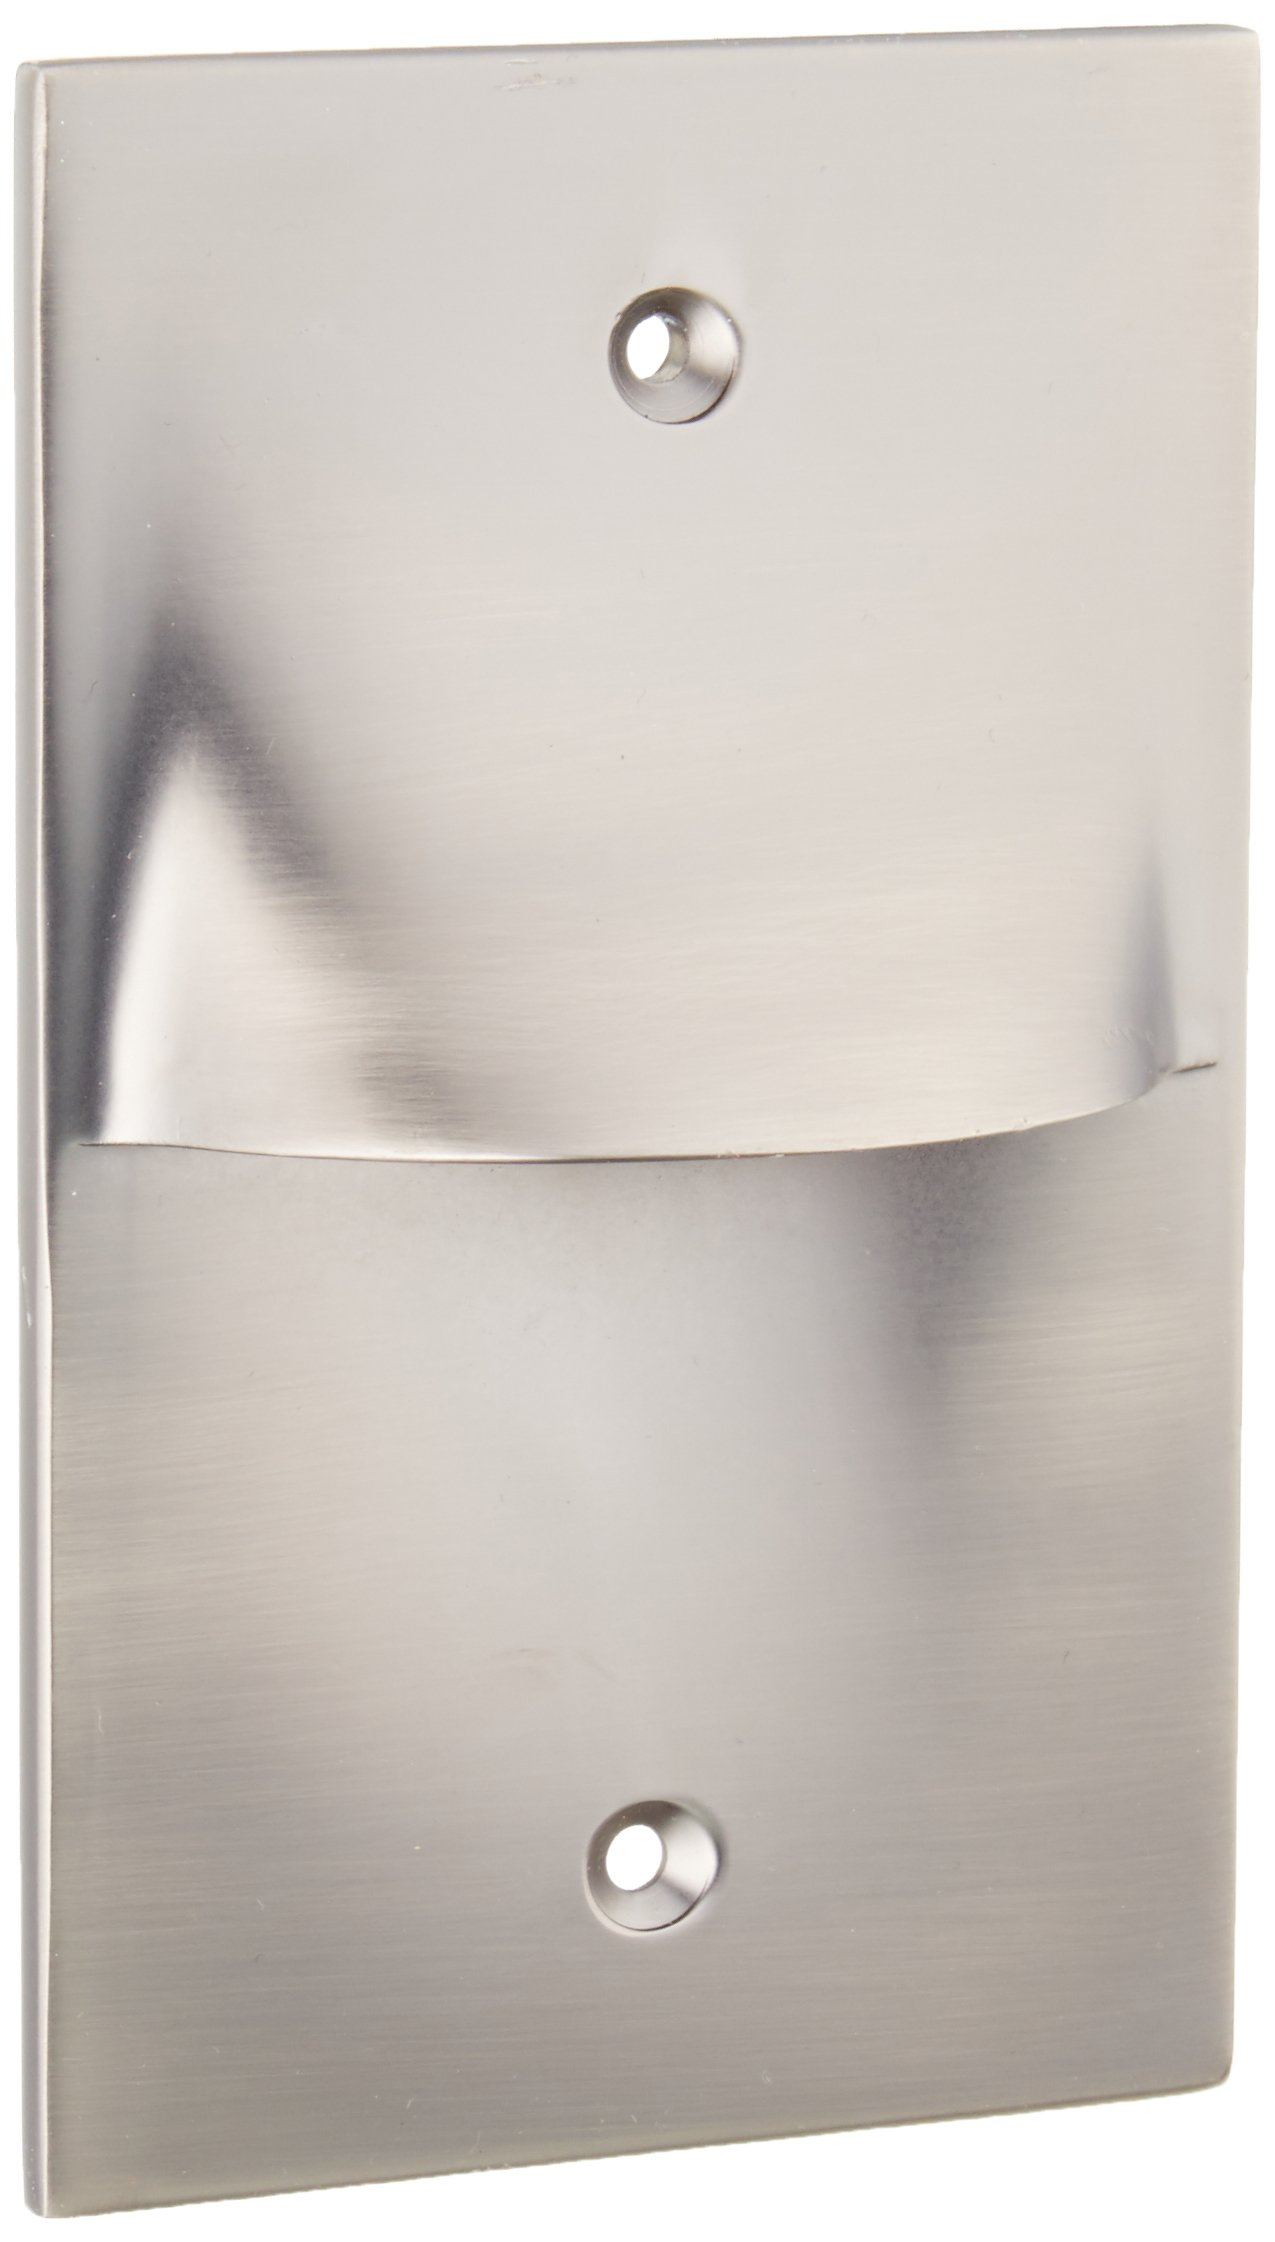 DVI Lighting DVP10708PW Indoor/Outdoor Steplight with No Shades, Pewter Finish